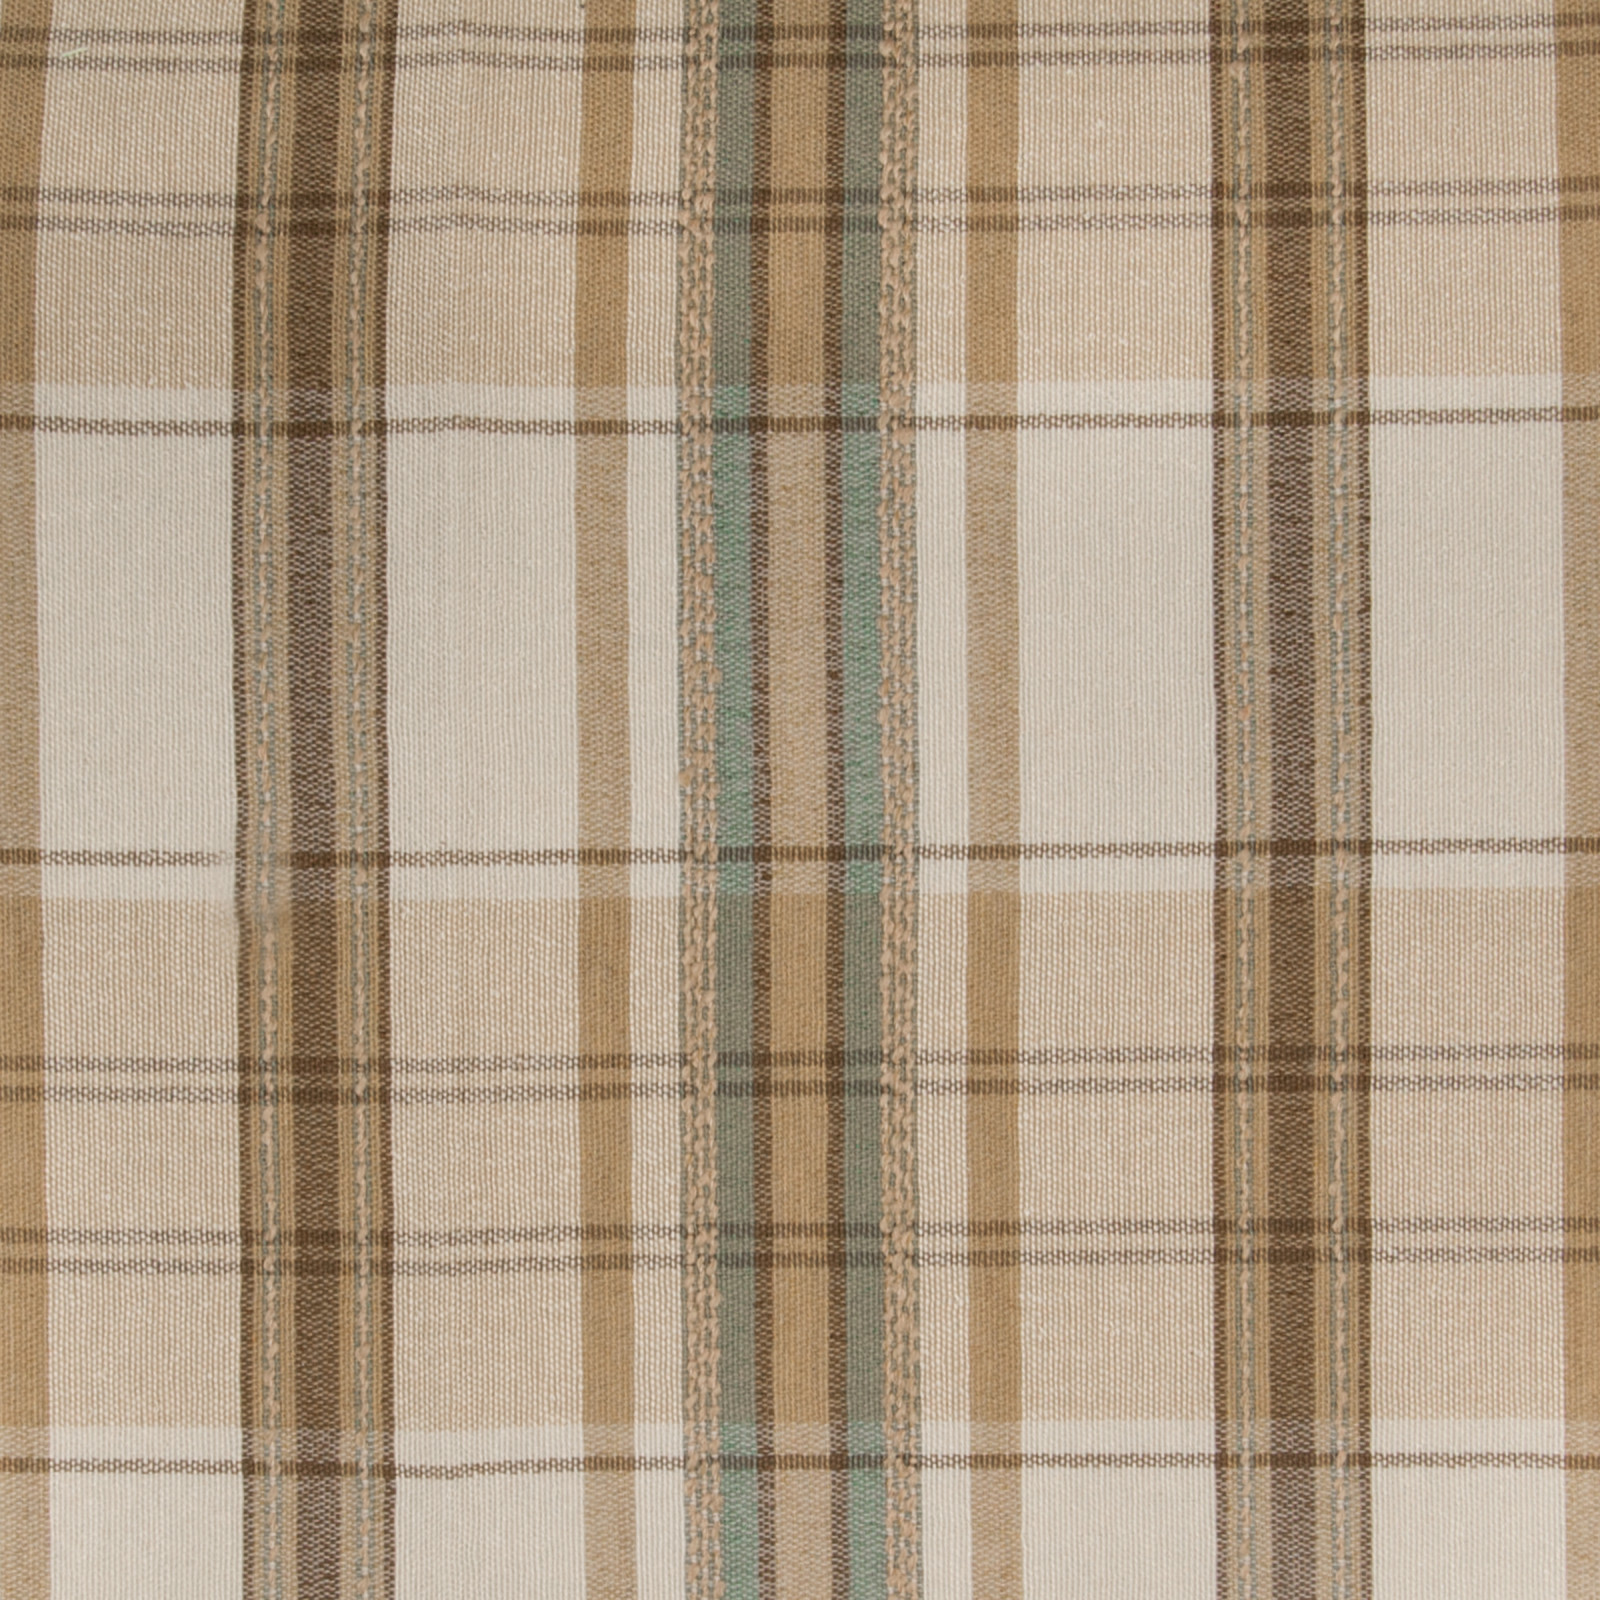 Camel F Neutral Plaid Woven Upholstery Fabric